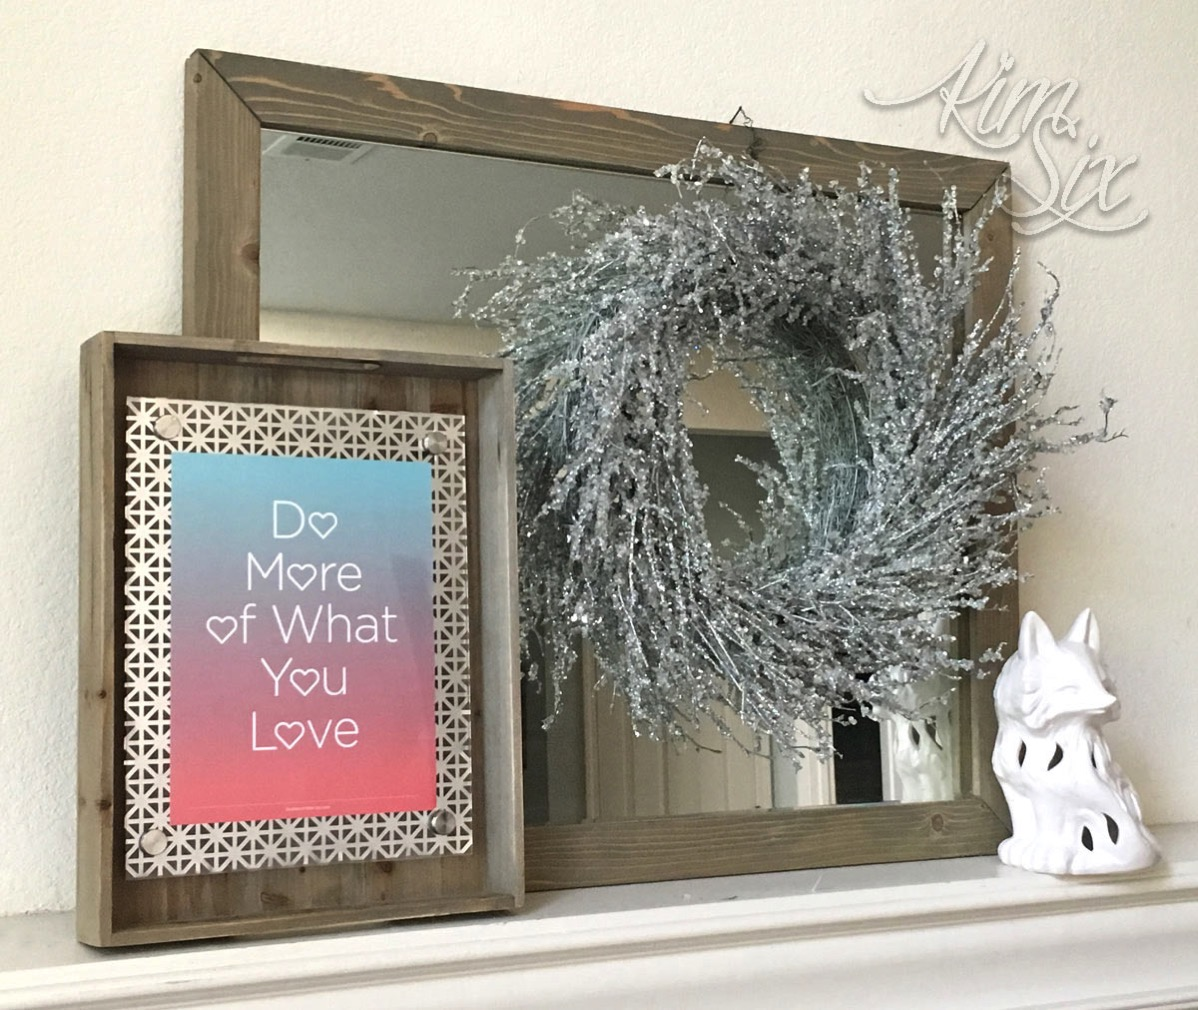 DIY Floating Acrylic Frames with Perforated Metal Accents - The Kim ...